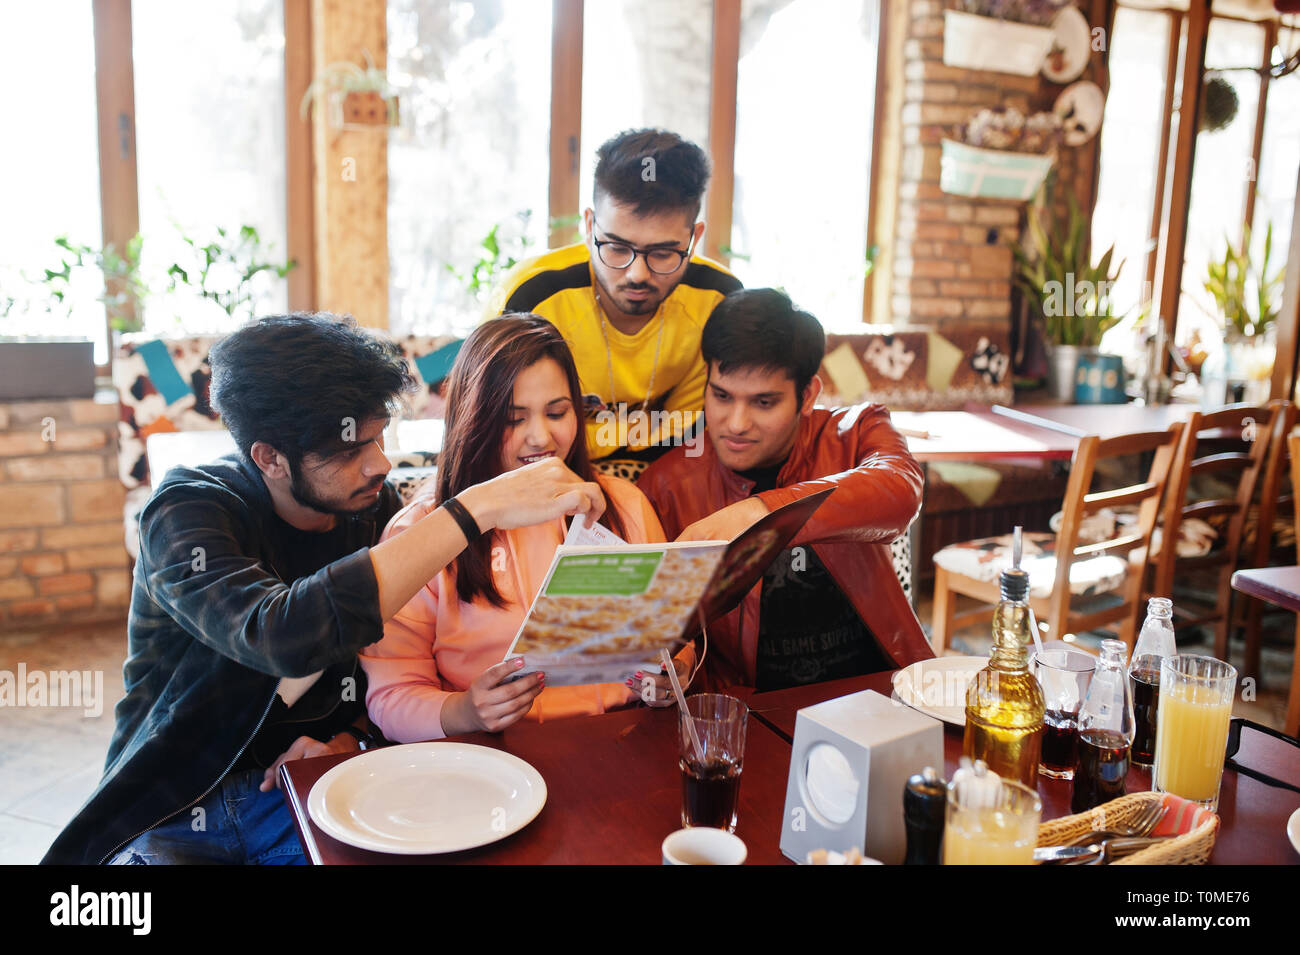 Group Of Asian Friends Sitting Cafe Happy Indian People Having Fun Together Sitting On Couch And Choose Meals From The Menu Stock Photo Alamy